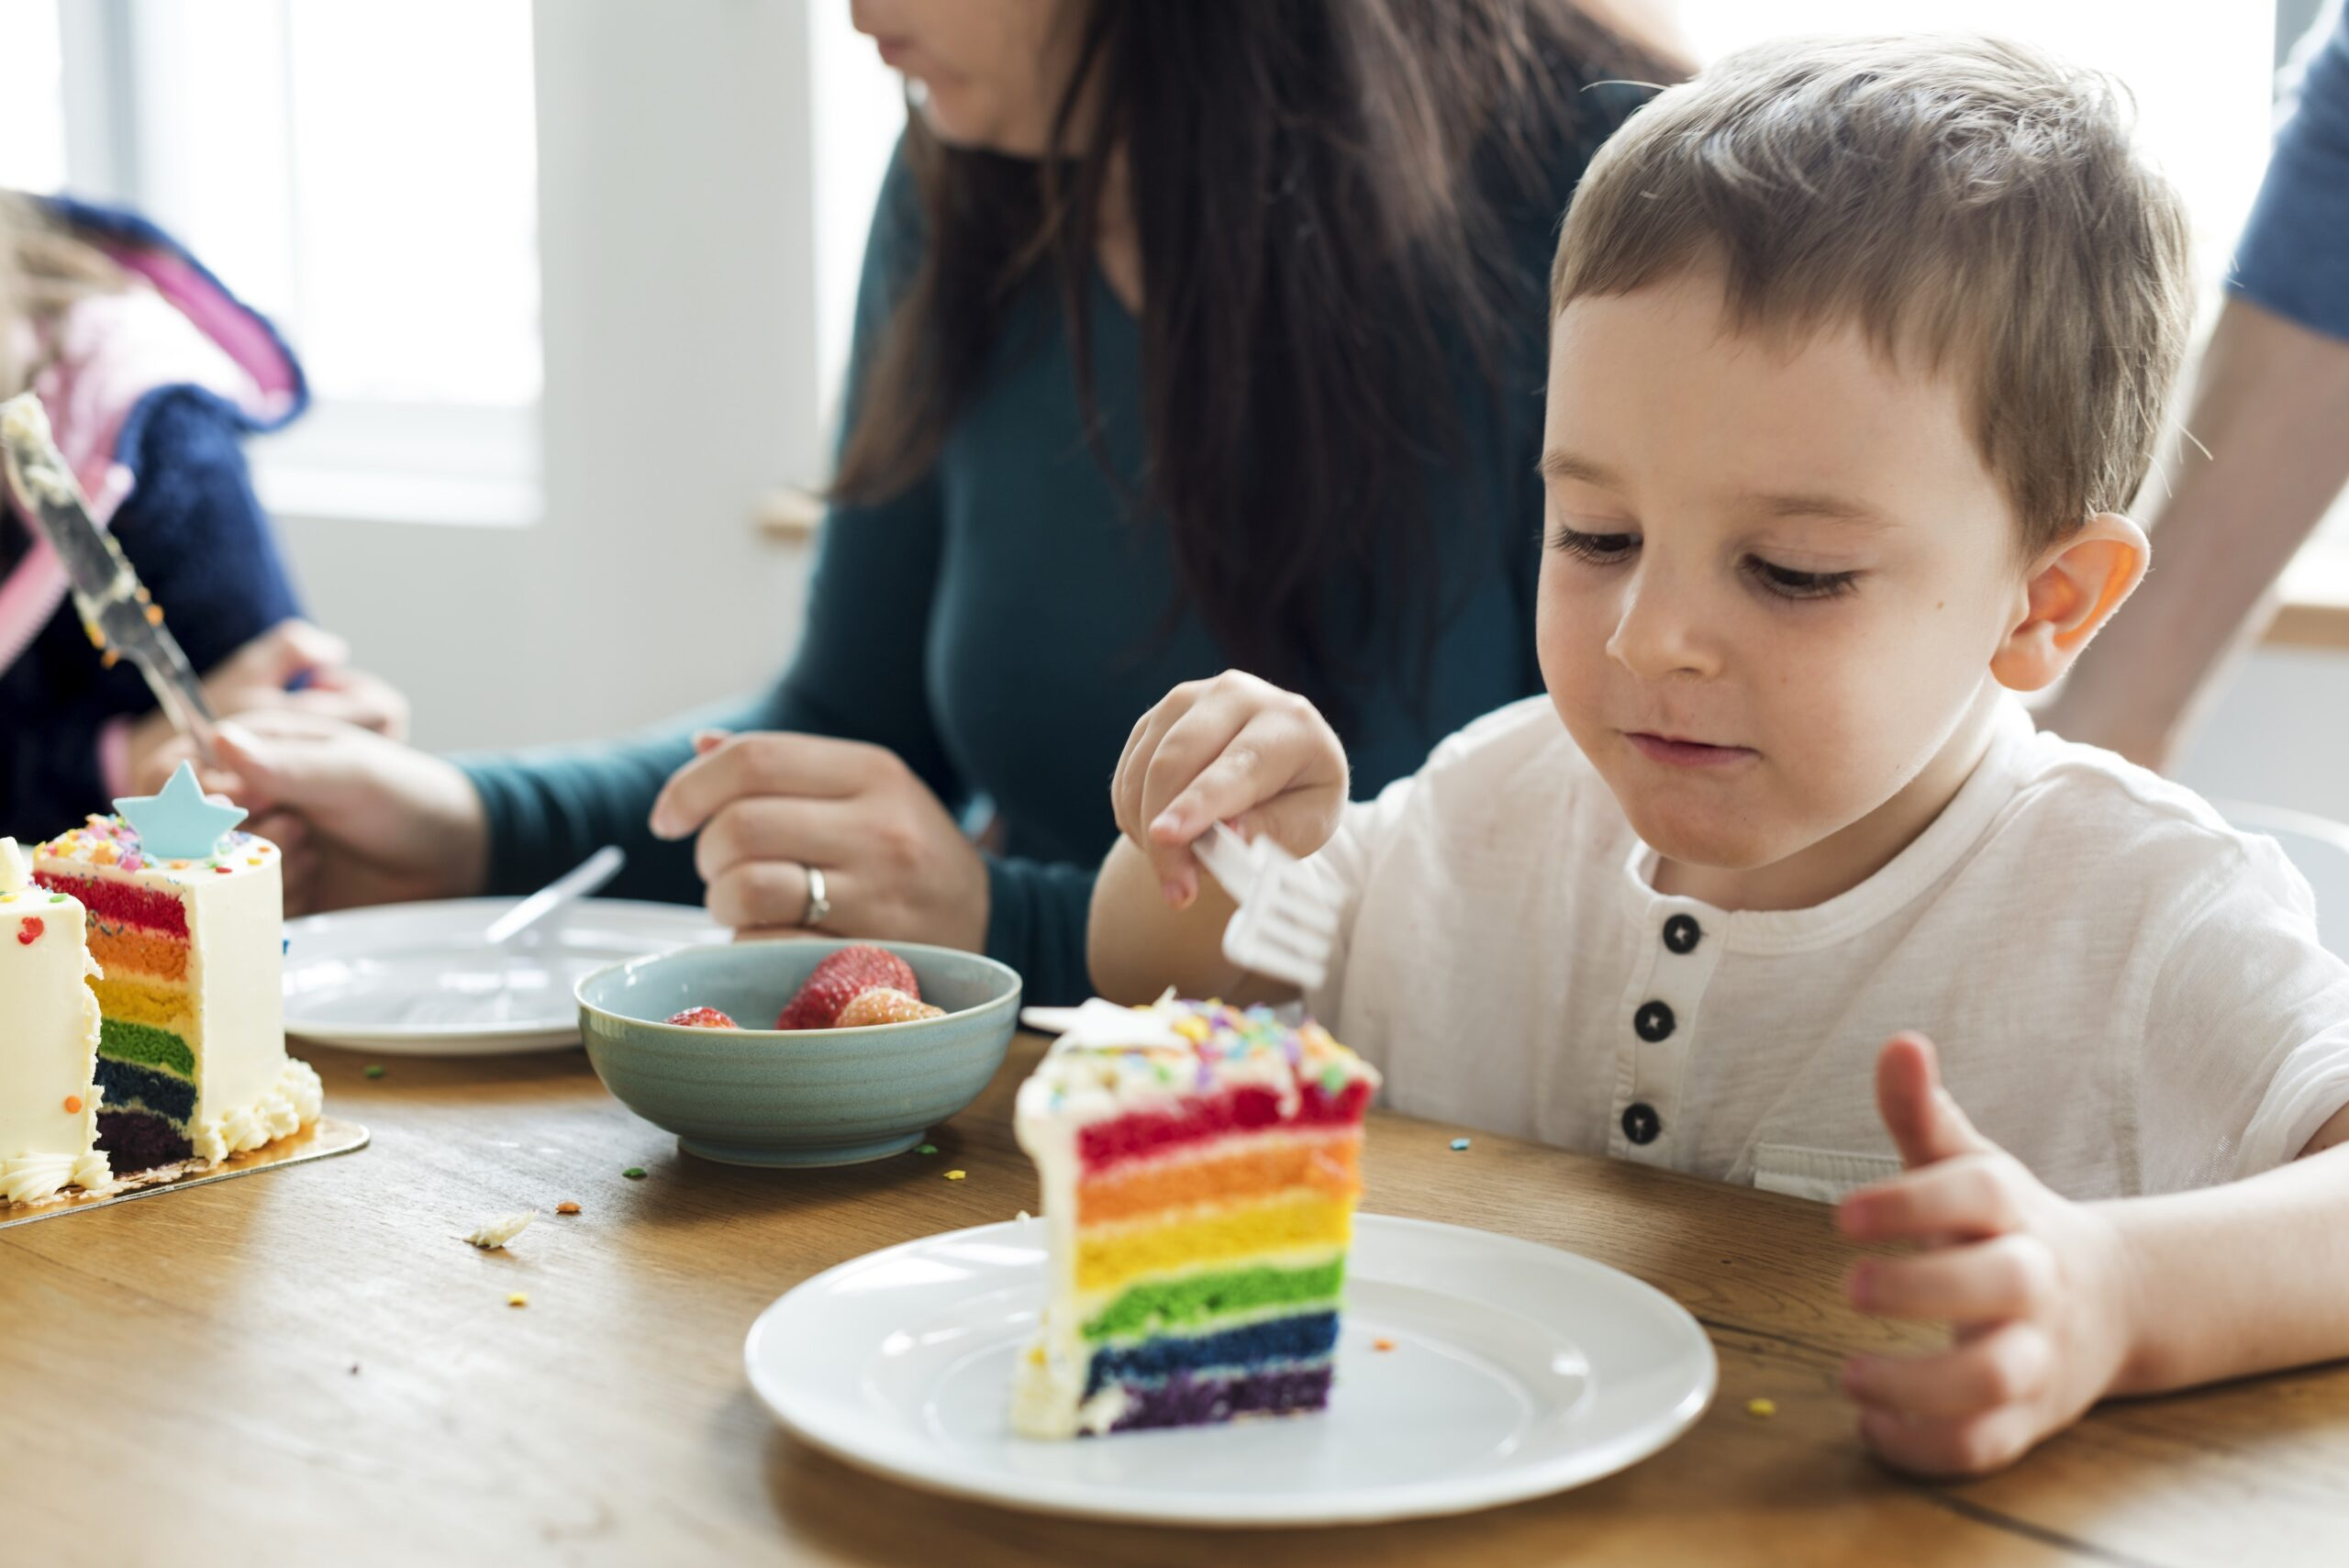 a young boy is about to take a bite from a tall piece of rainbow-coloured cake which represents the harmful effects of sugar that leads to meltdowns and tantrums